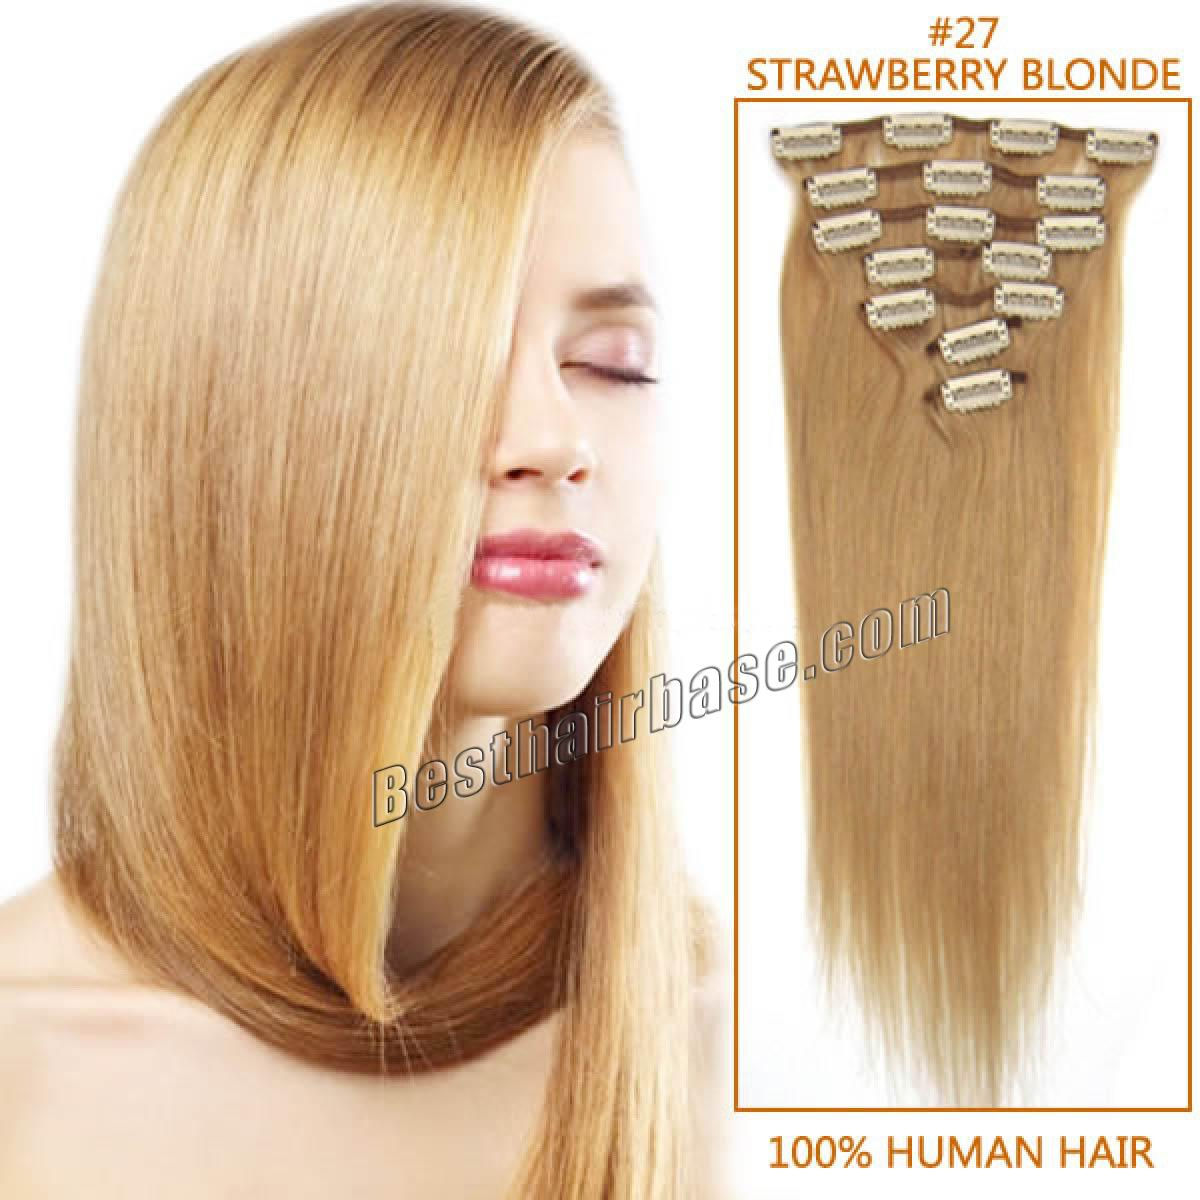 16 Inch Excellent Straight Clip In Human Hair Extensions 27